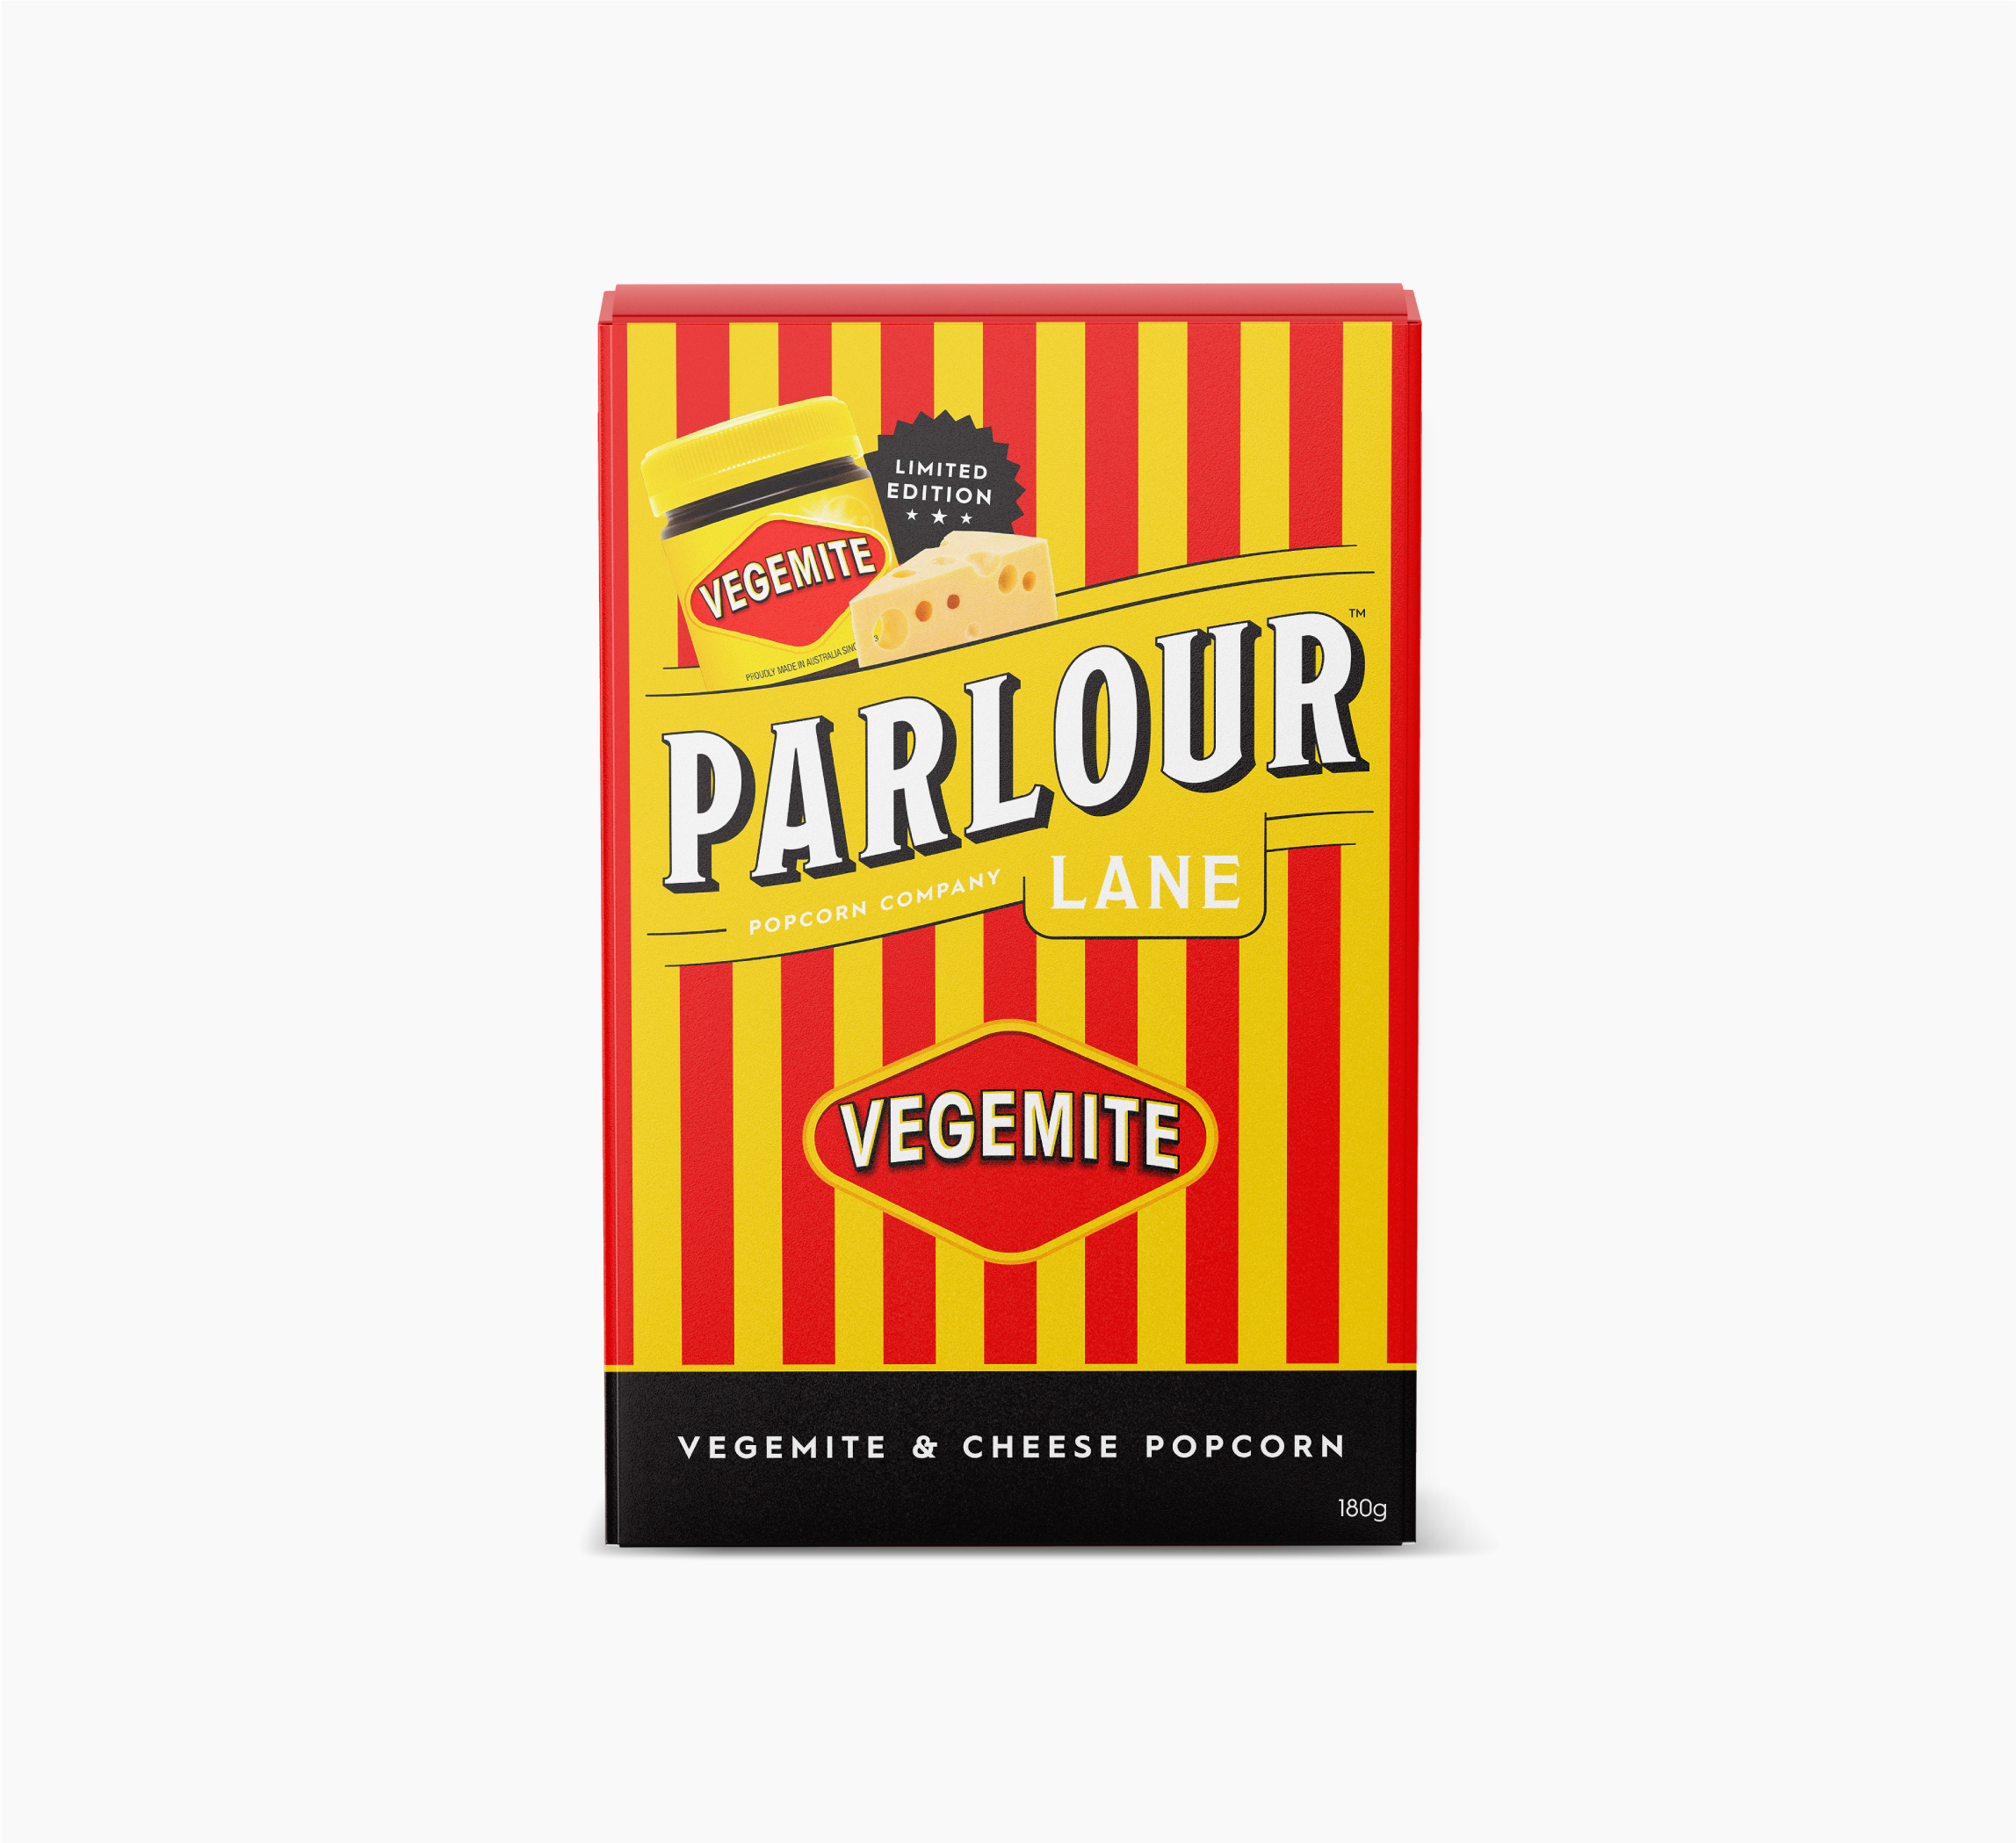 Parlour Lane Vegemite Package Design 2